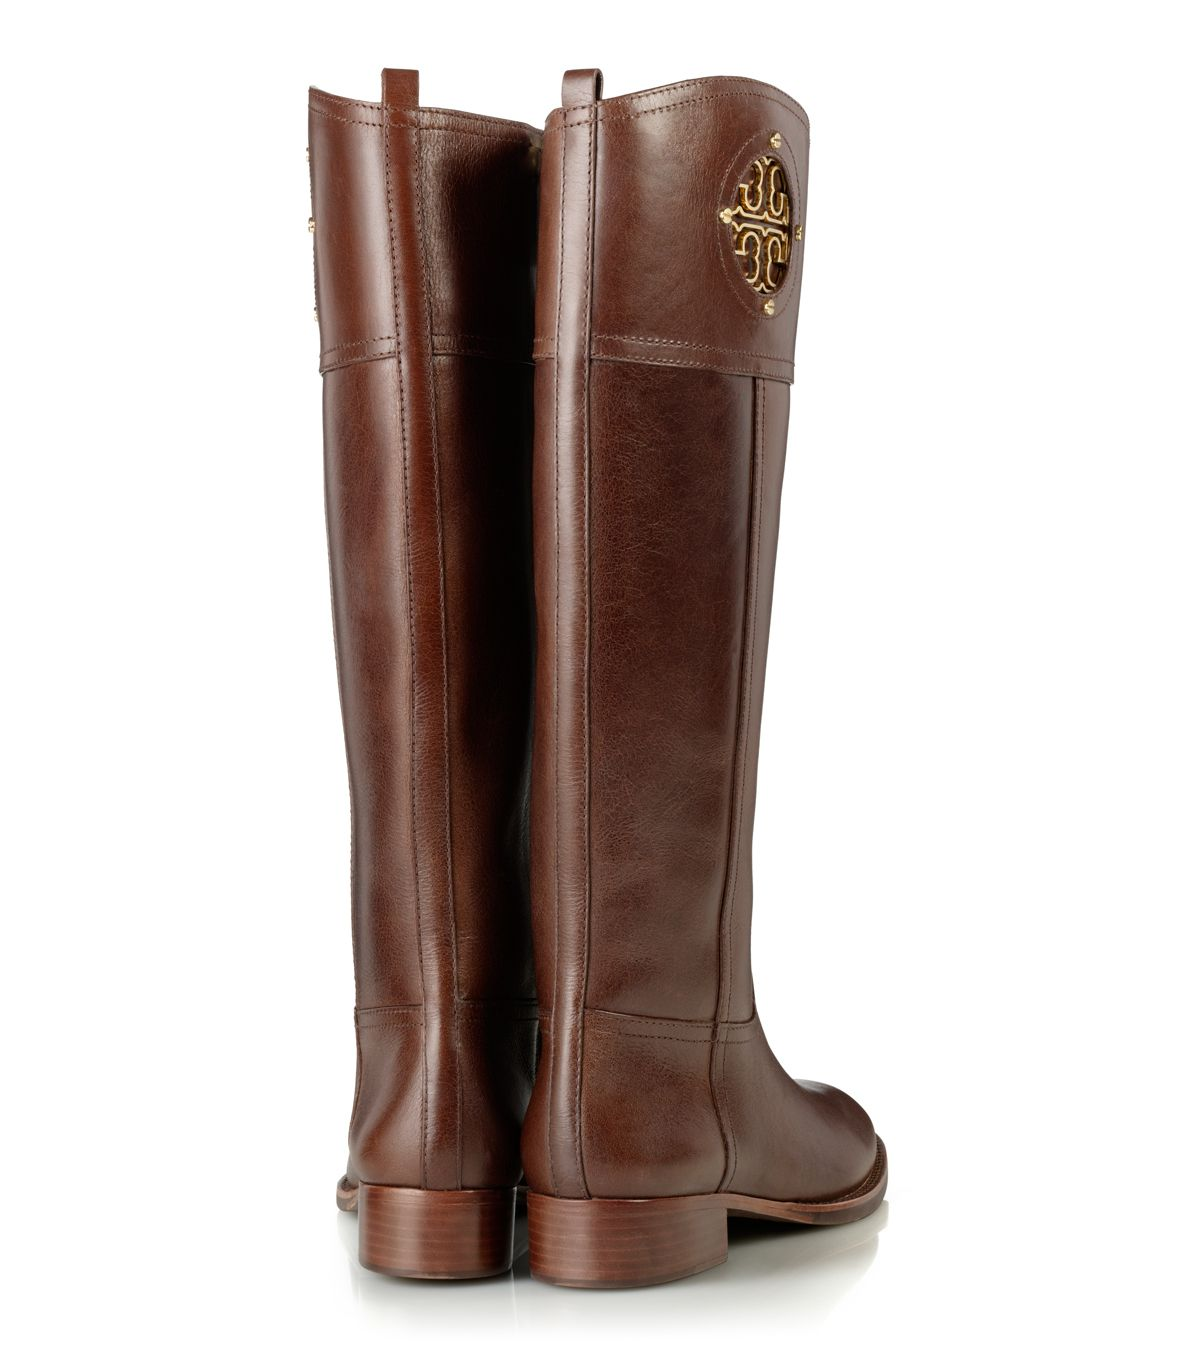 Tory burch Kiernan Riding Boot in Brown | Lyst